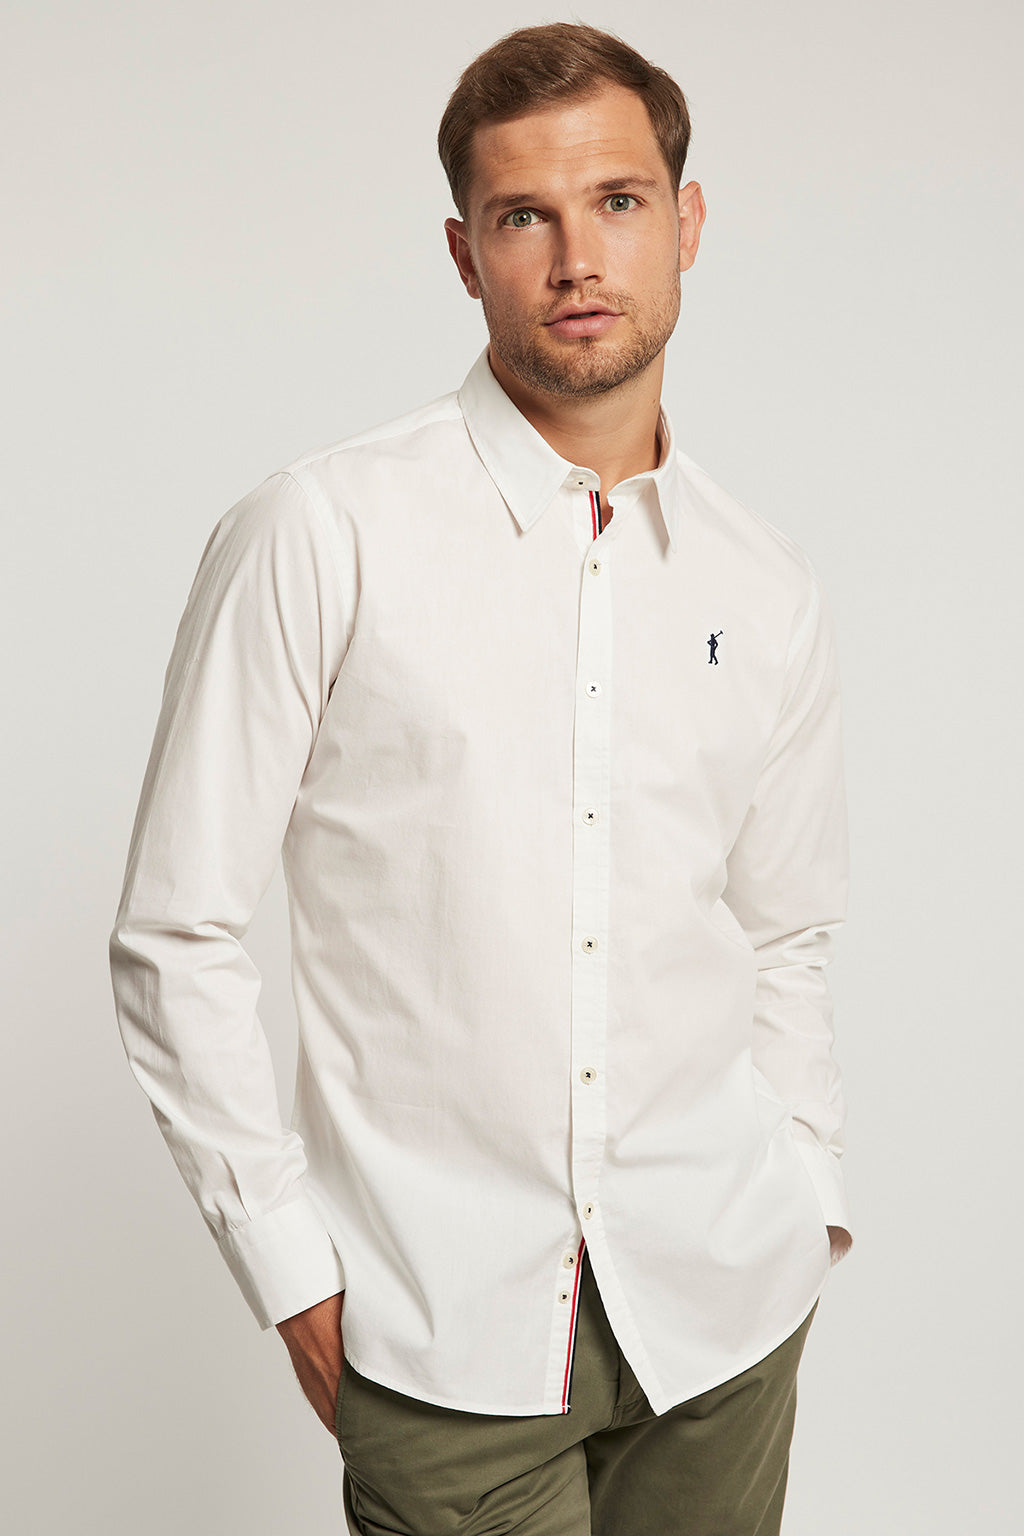 Camisa slim fit blanca con logo bordado